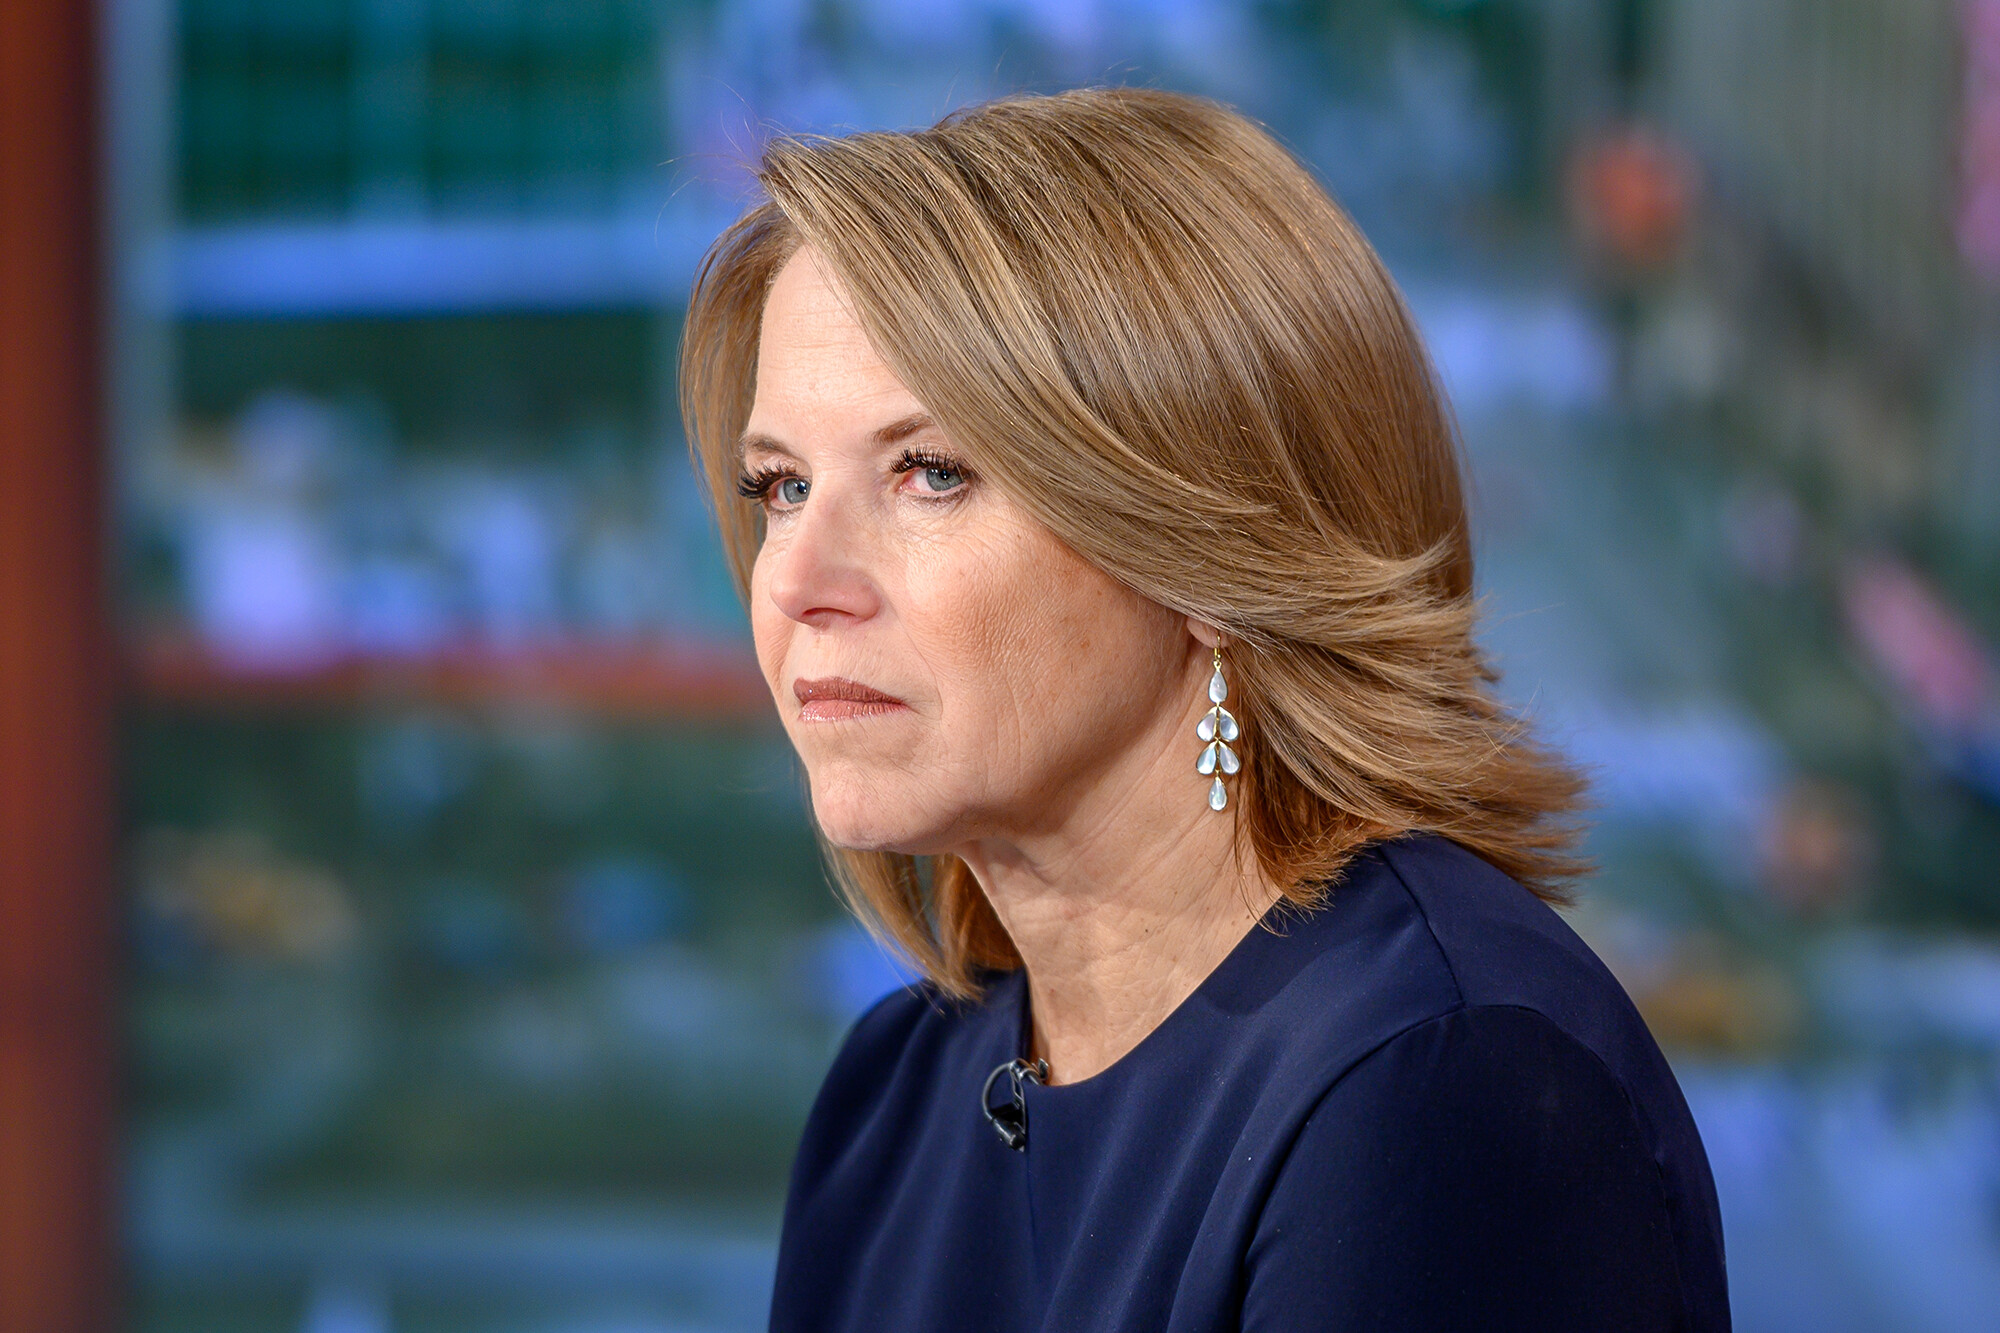 Katie Couric says she has no relationship with Matt Lauer